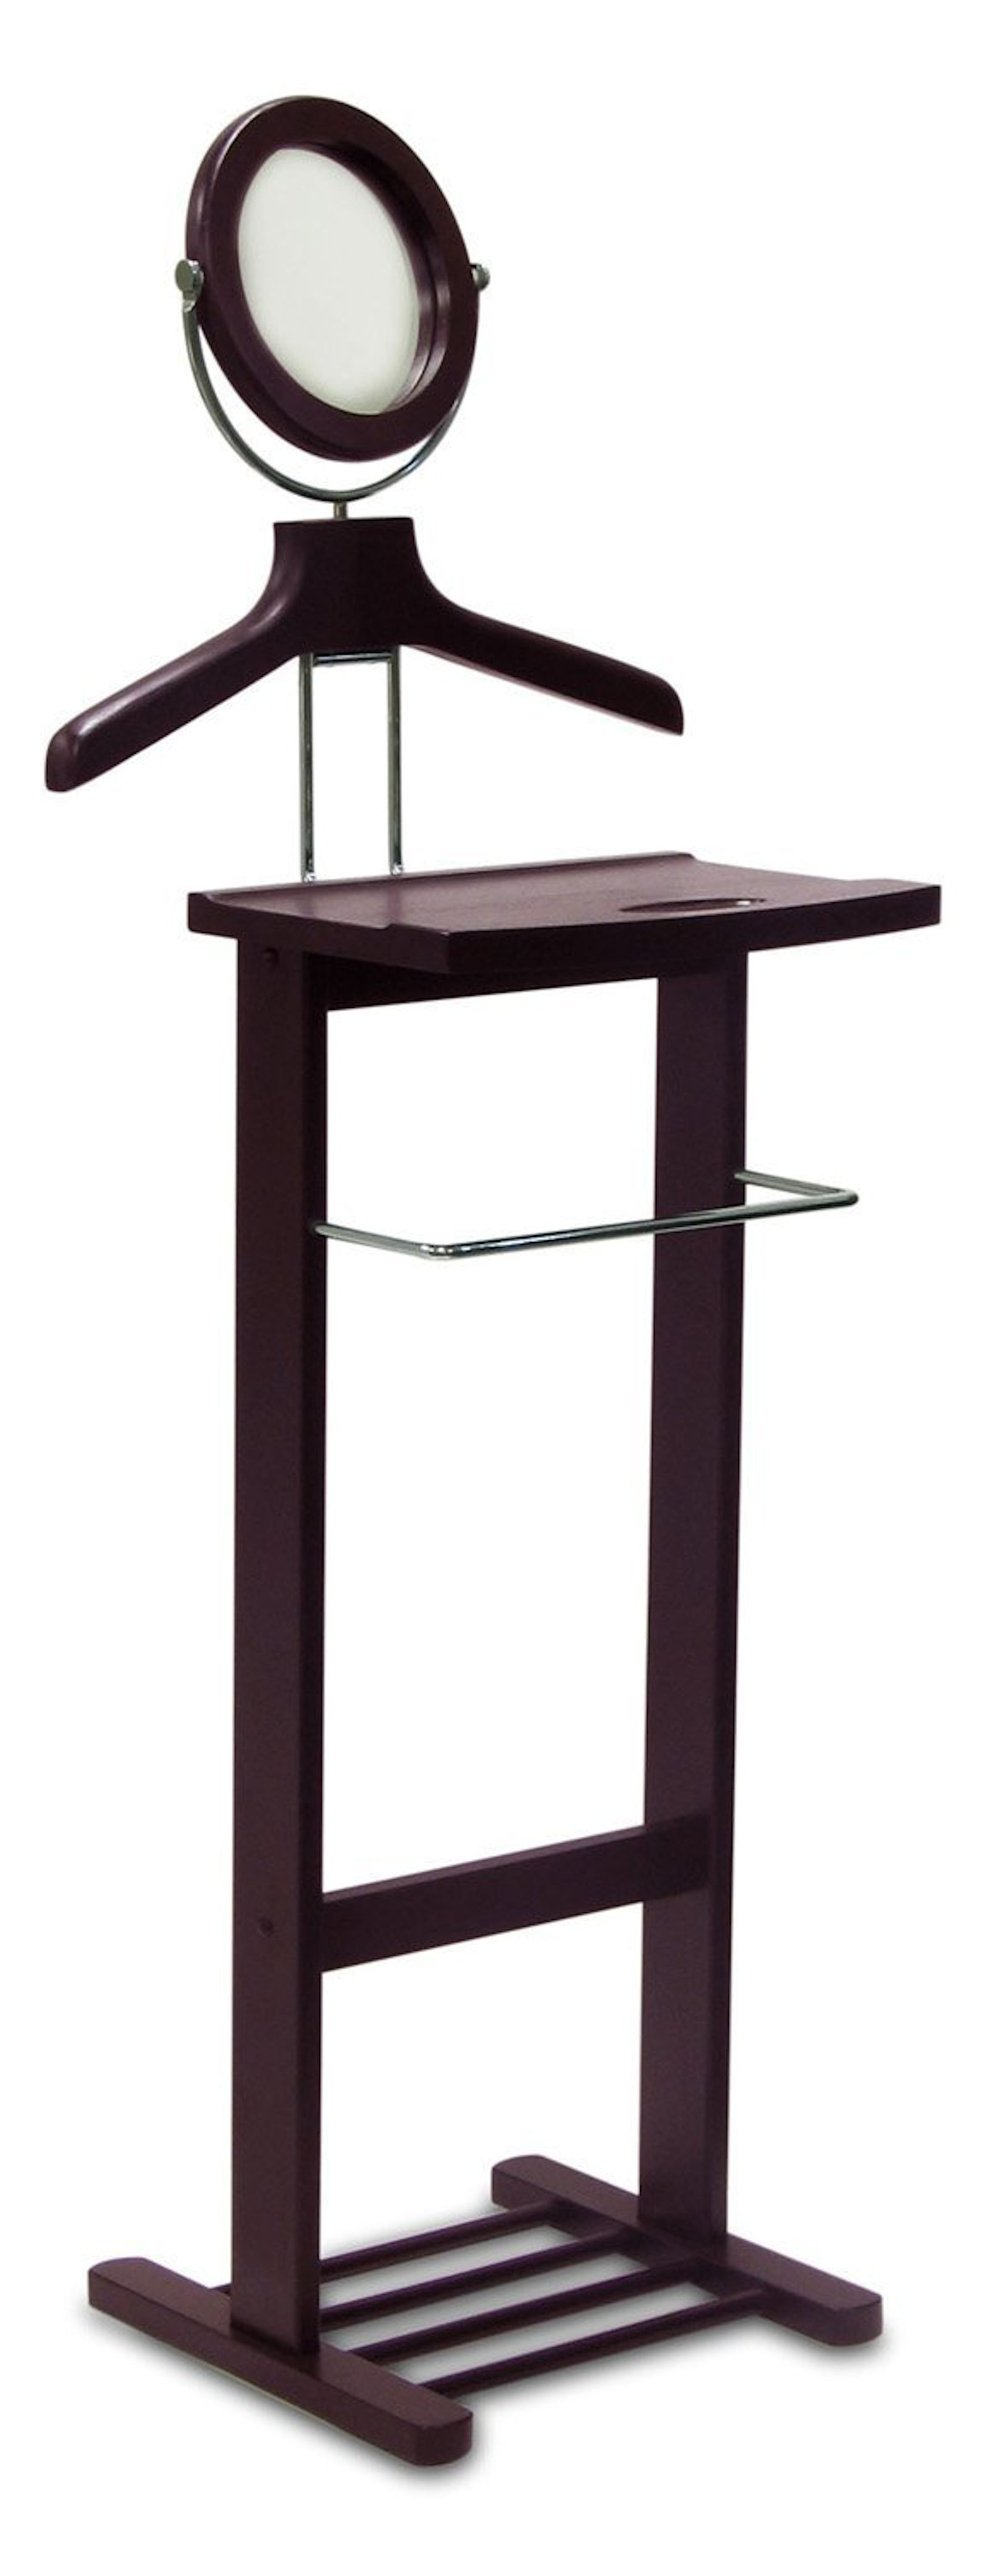 Legacy Decor Valet Stand with Mirror New Espresso Finish by Legacy Decor